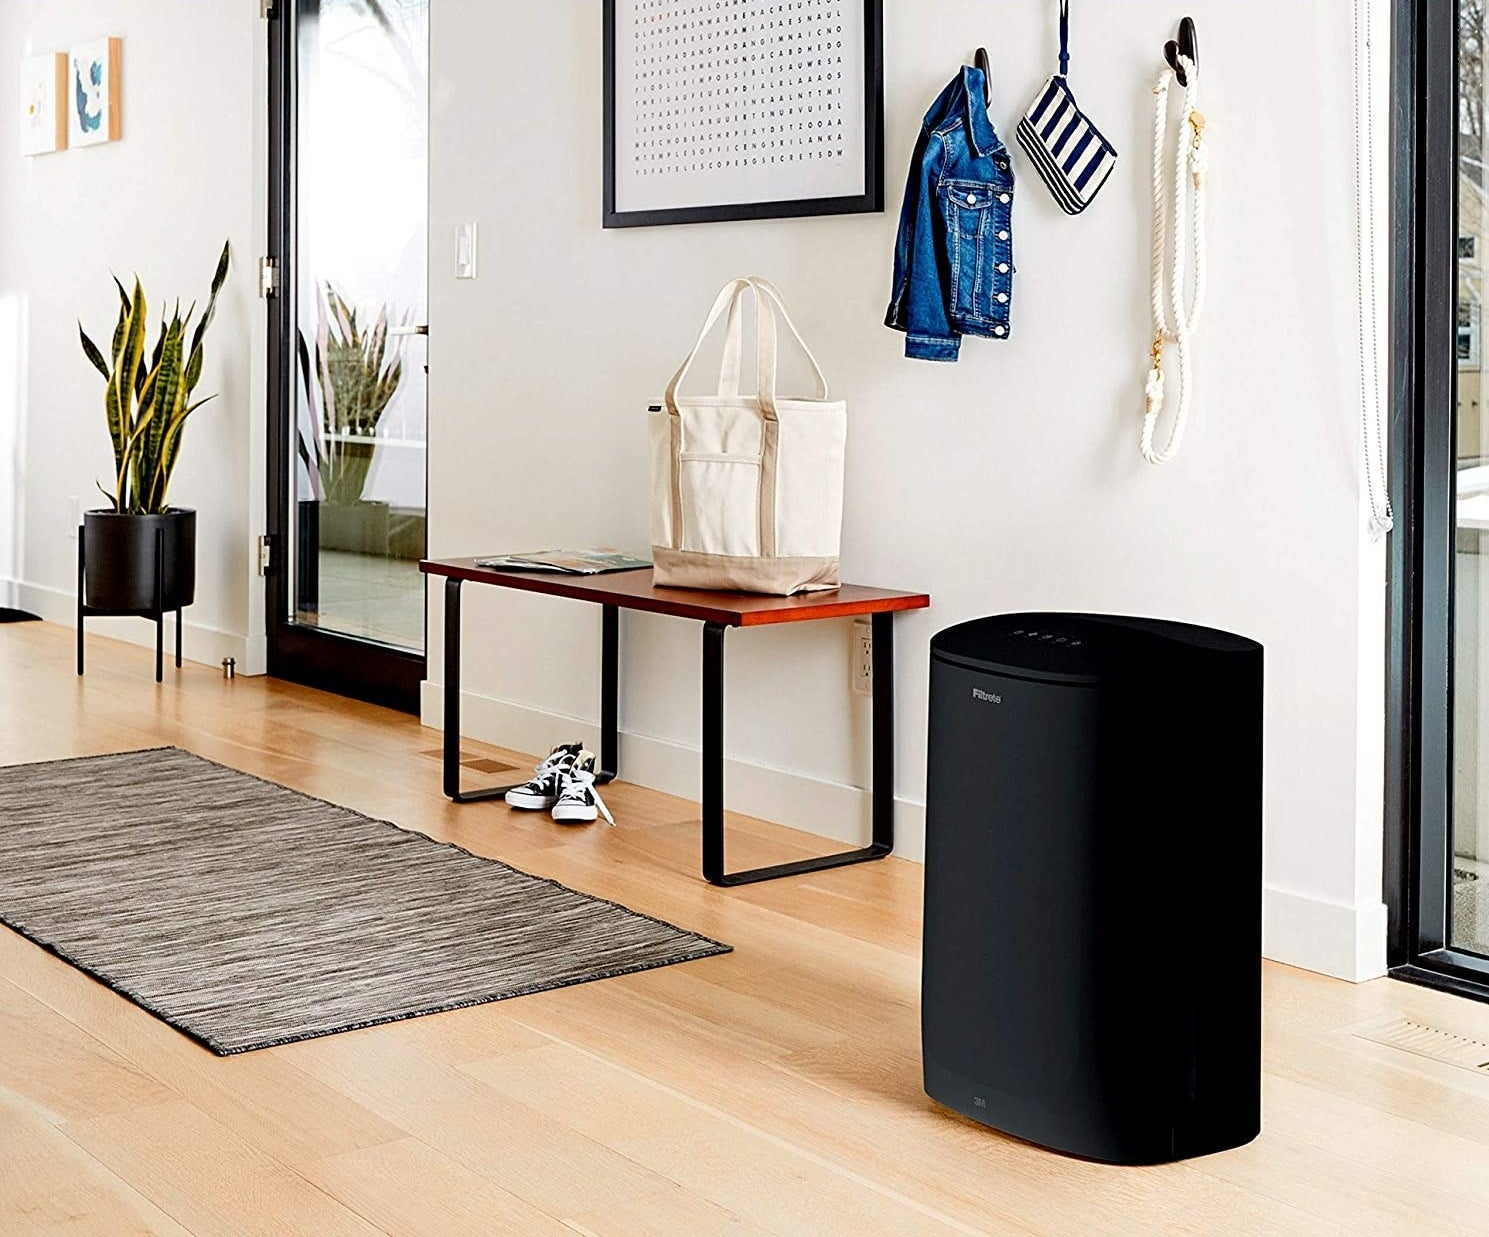 black filtrete air purifier in the entryway of a room